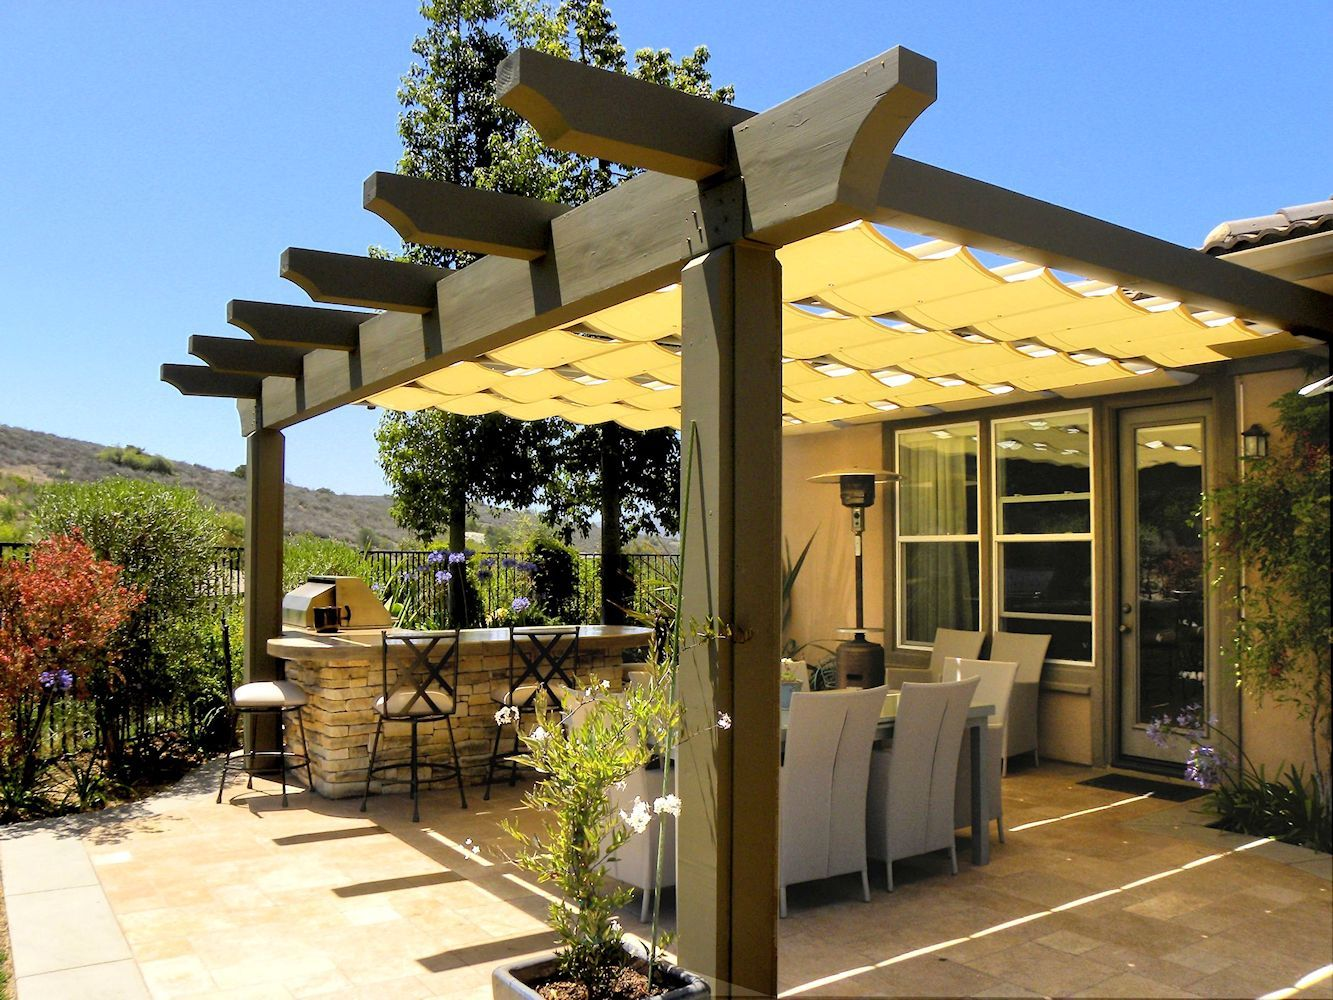 159 Best Pergola Images On Pinterest